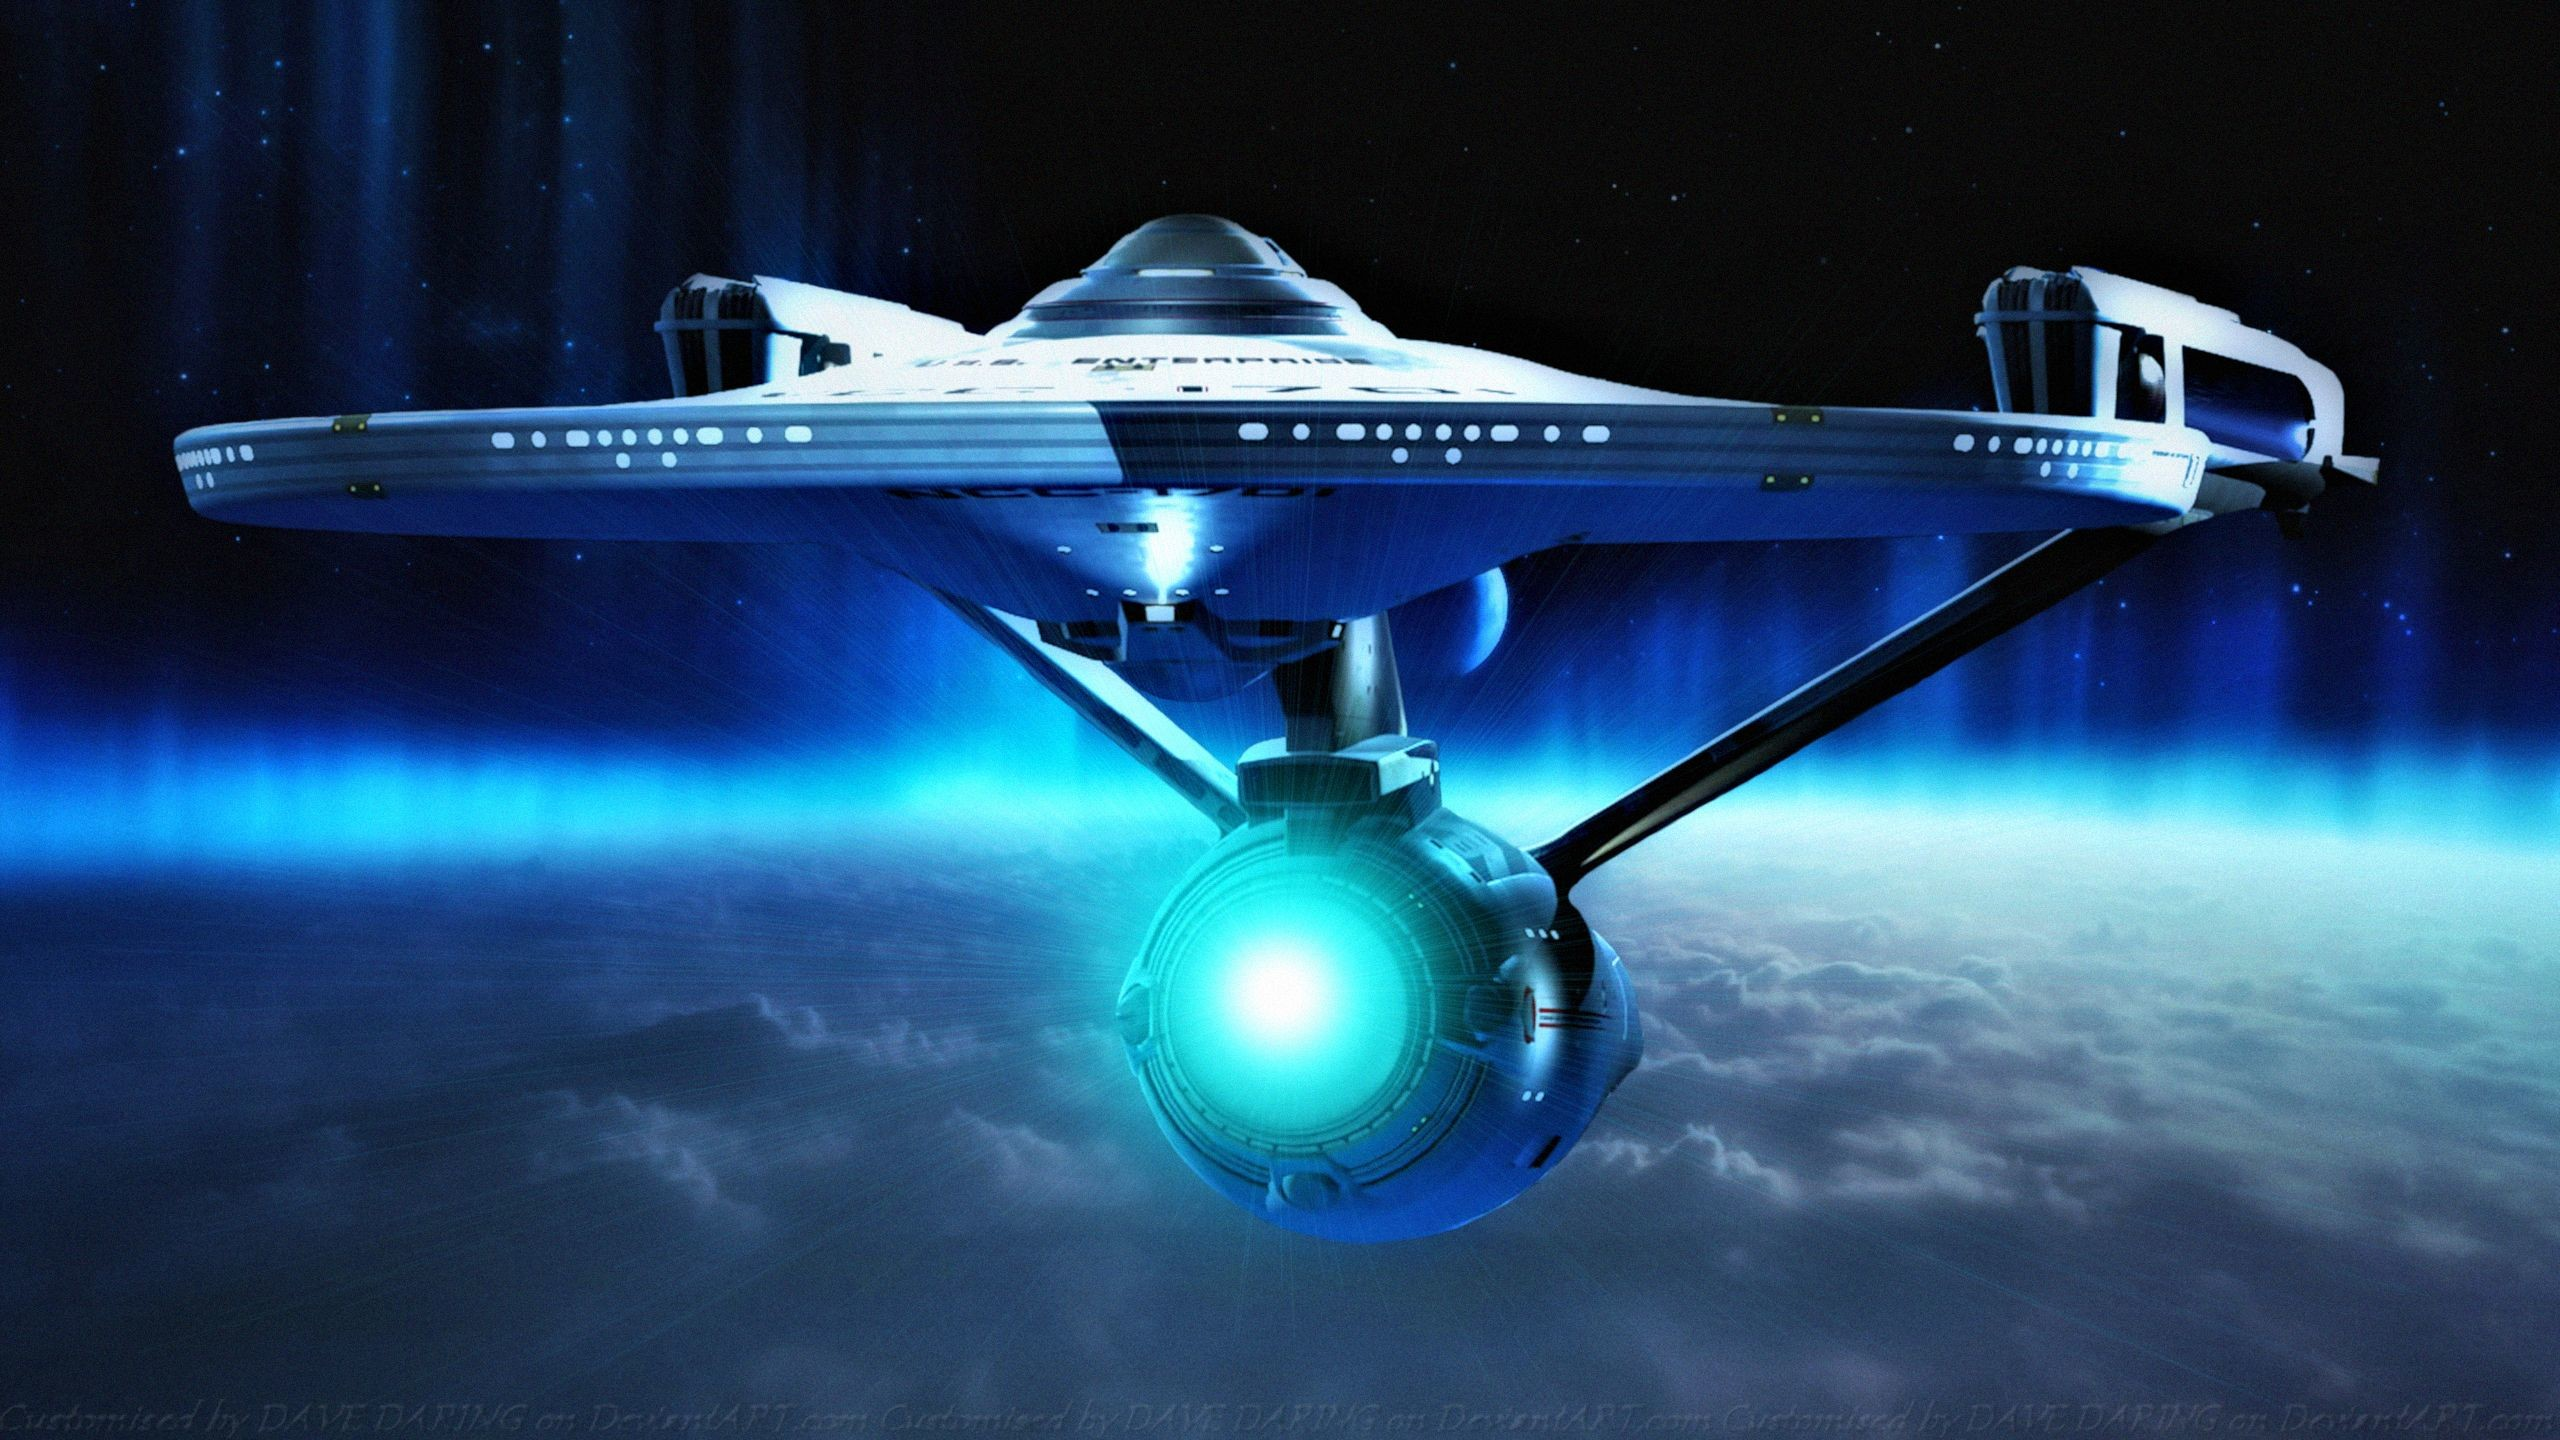 starship enterprise wallpaper (64+ images)